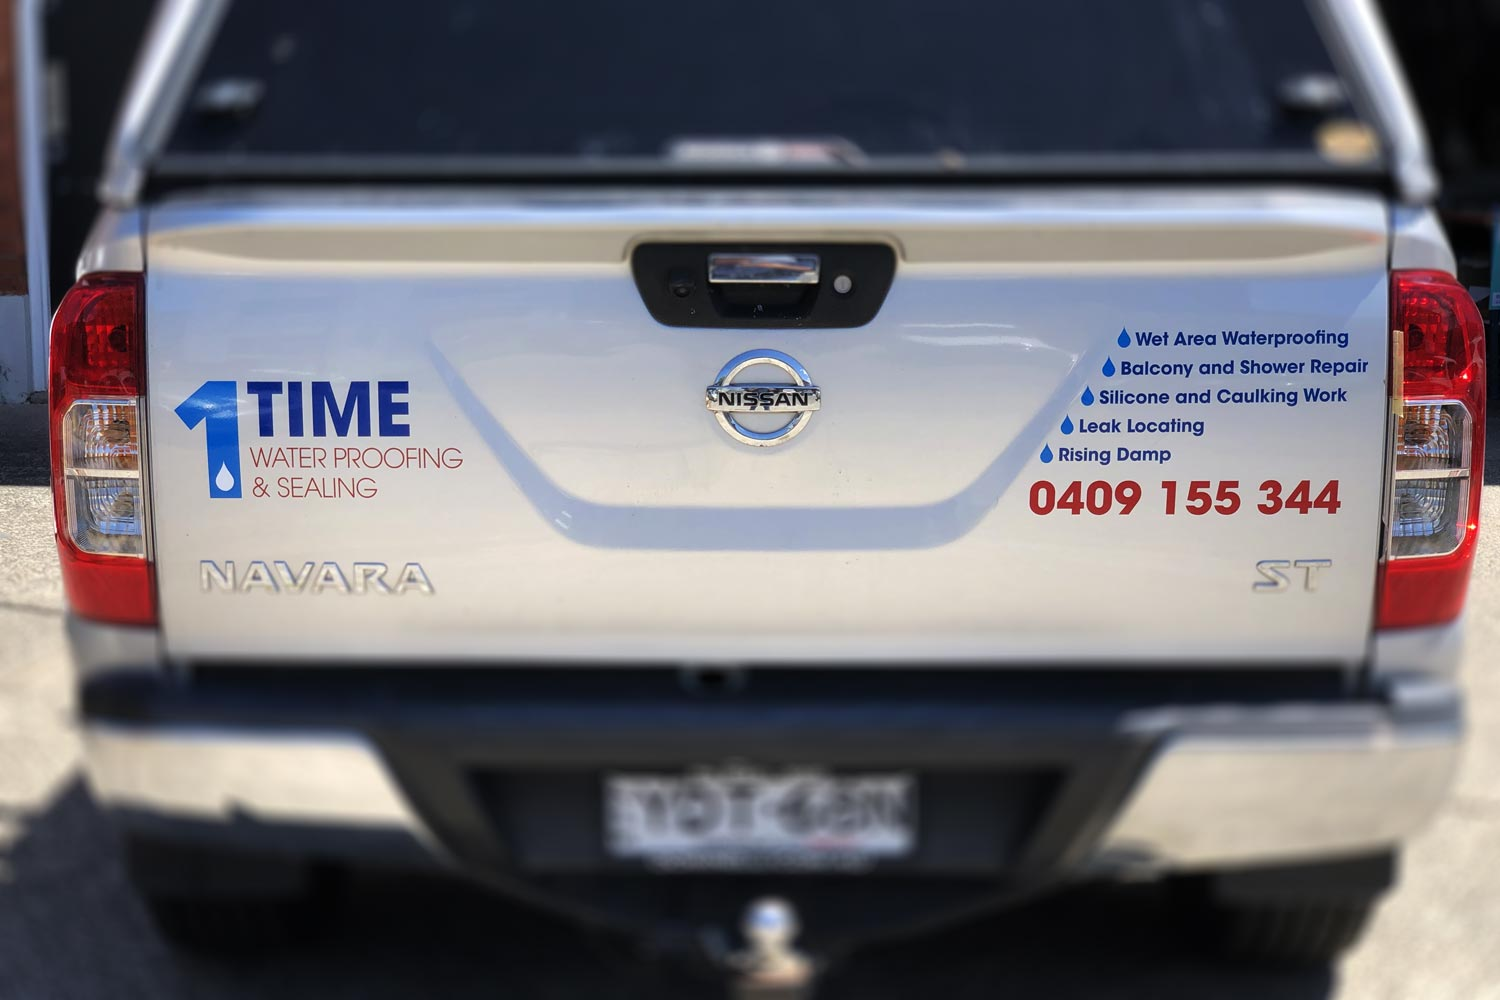 1Time Waterproofing Nissan back with signage